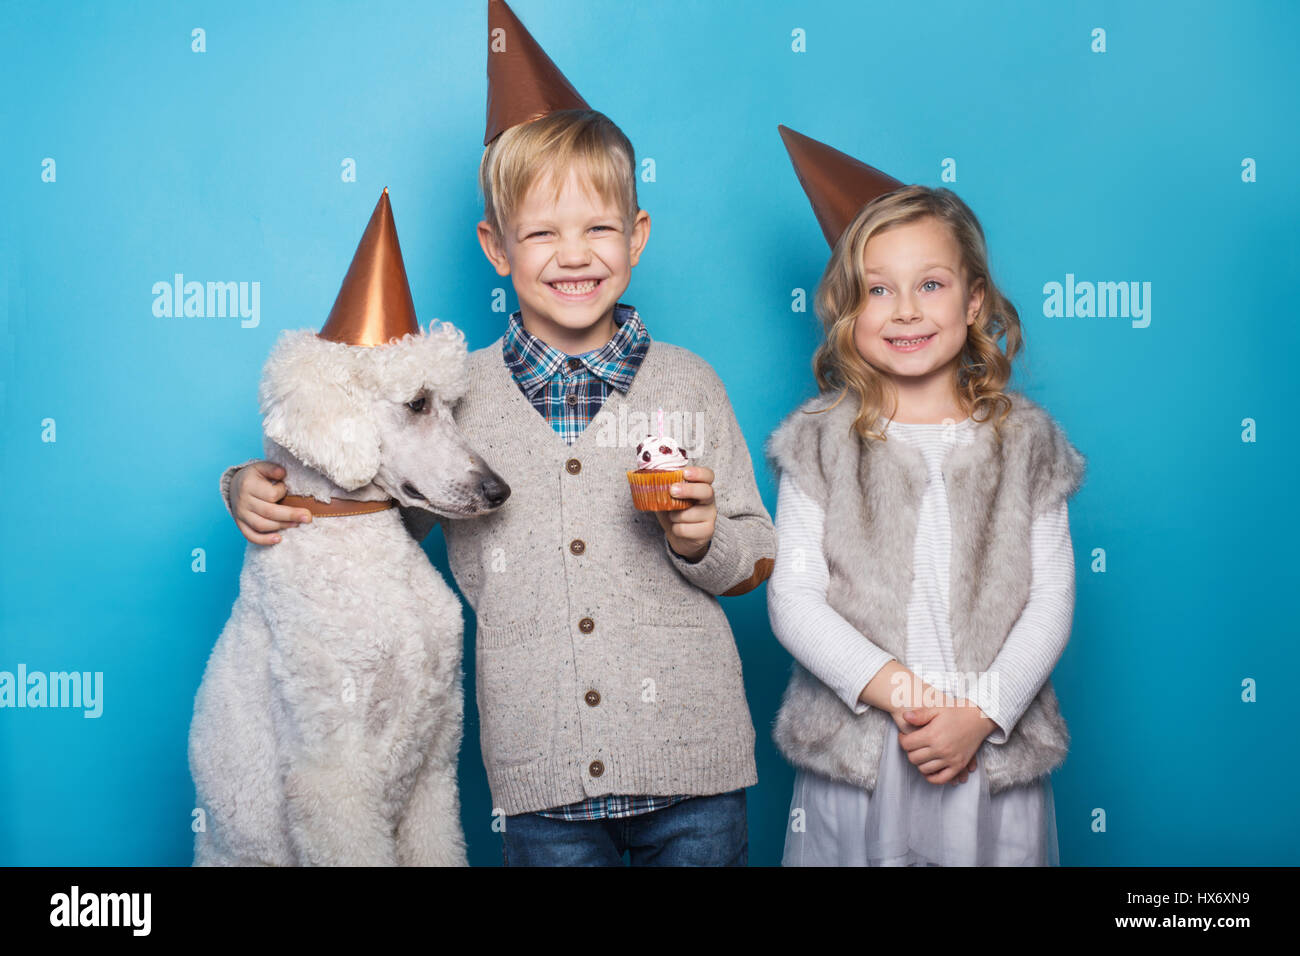 Little Beautiful Girl And Handsome Boy With Dog Celebrate Birthday Friendship Family Studio